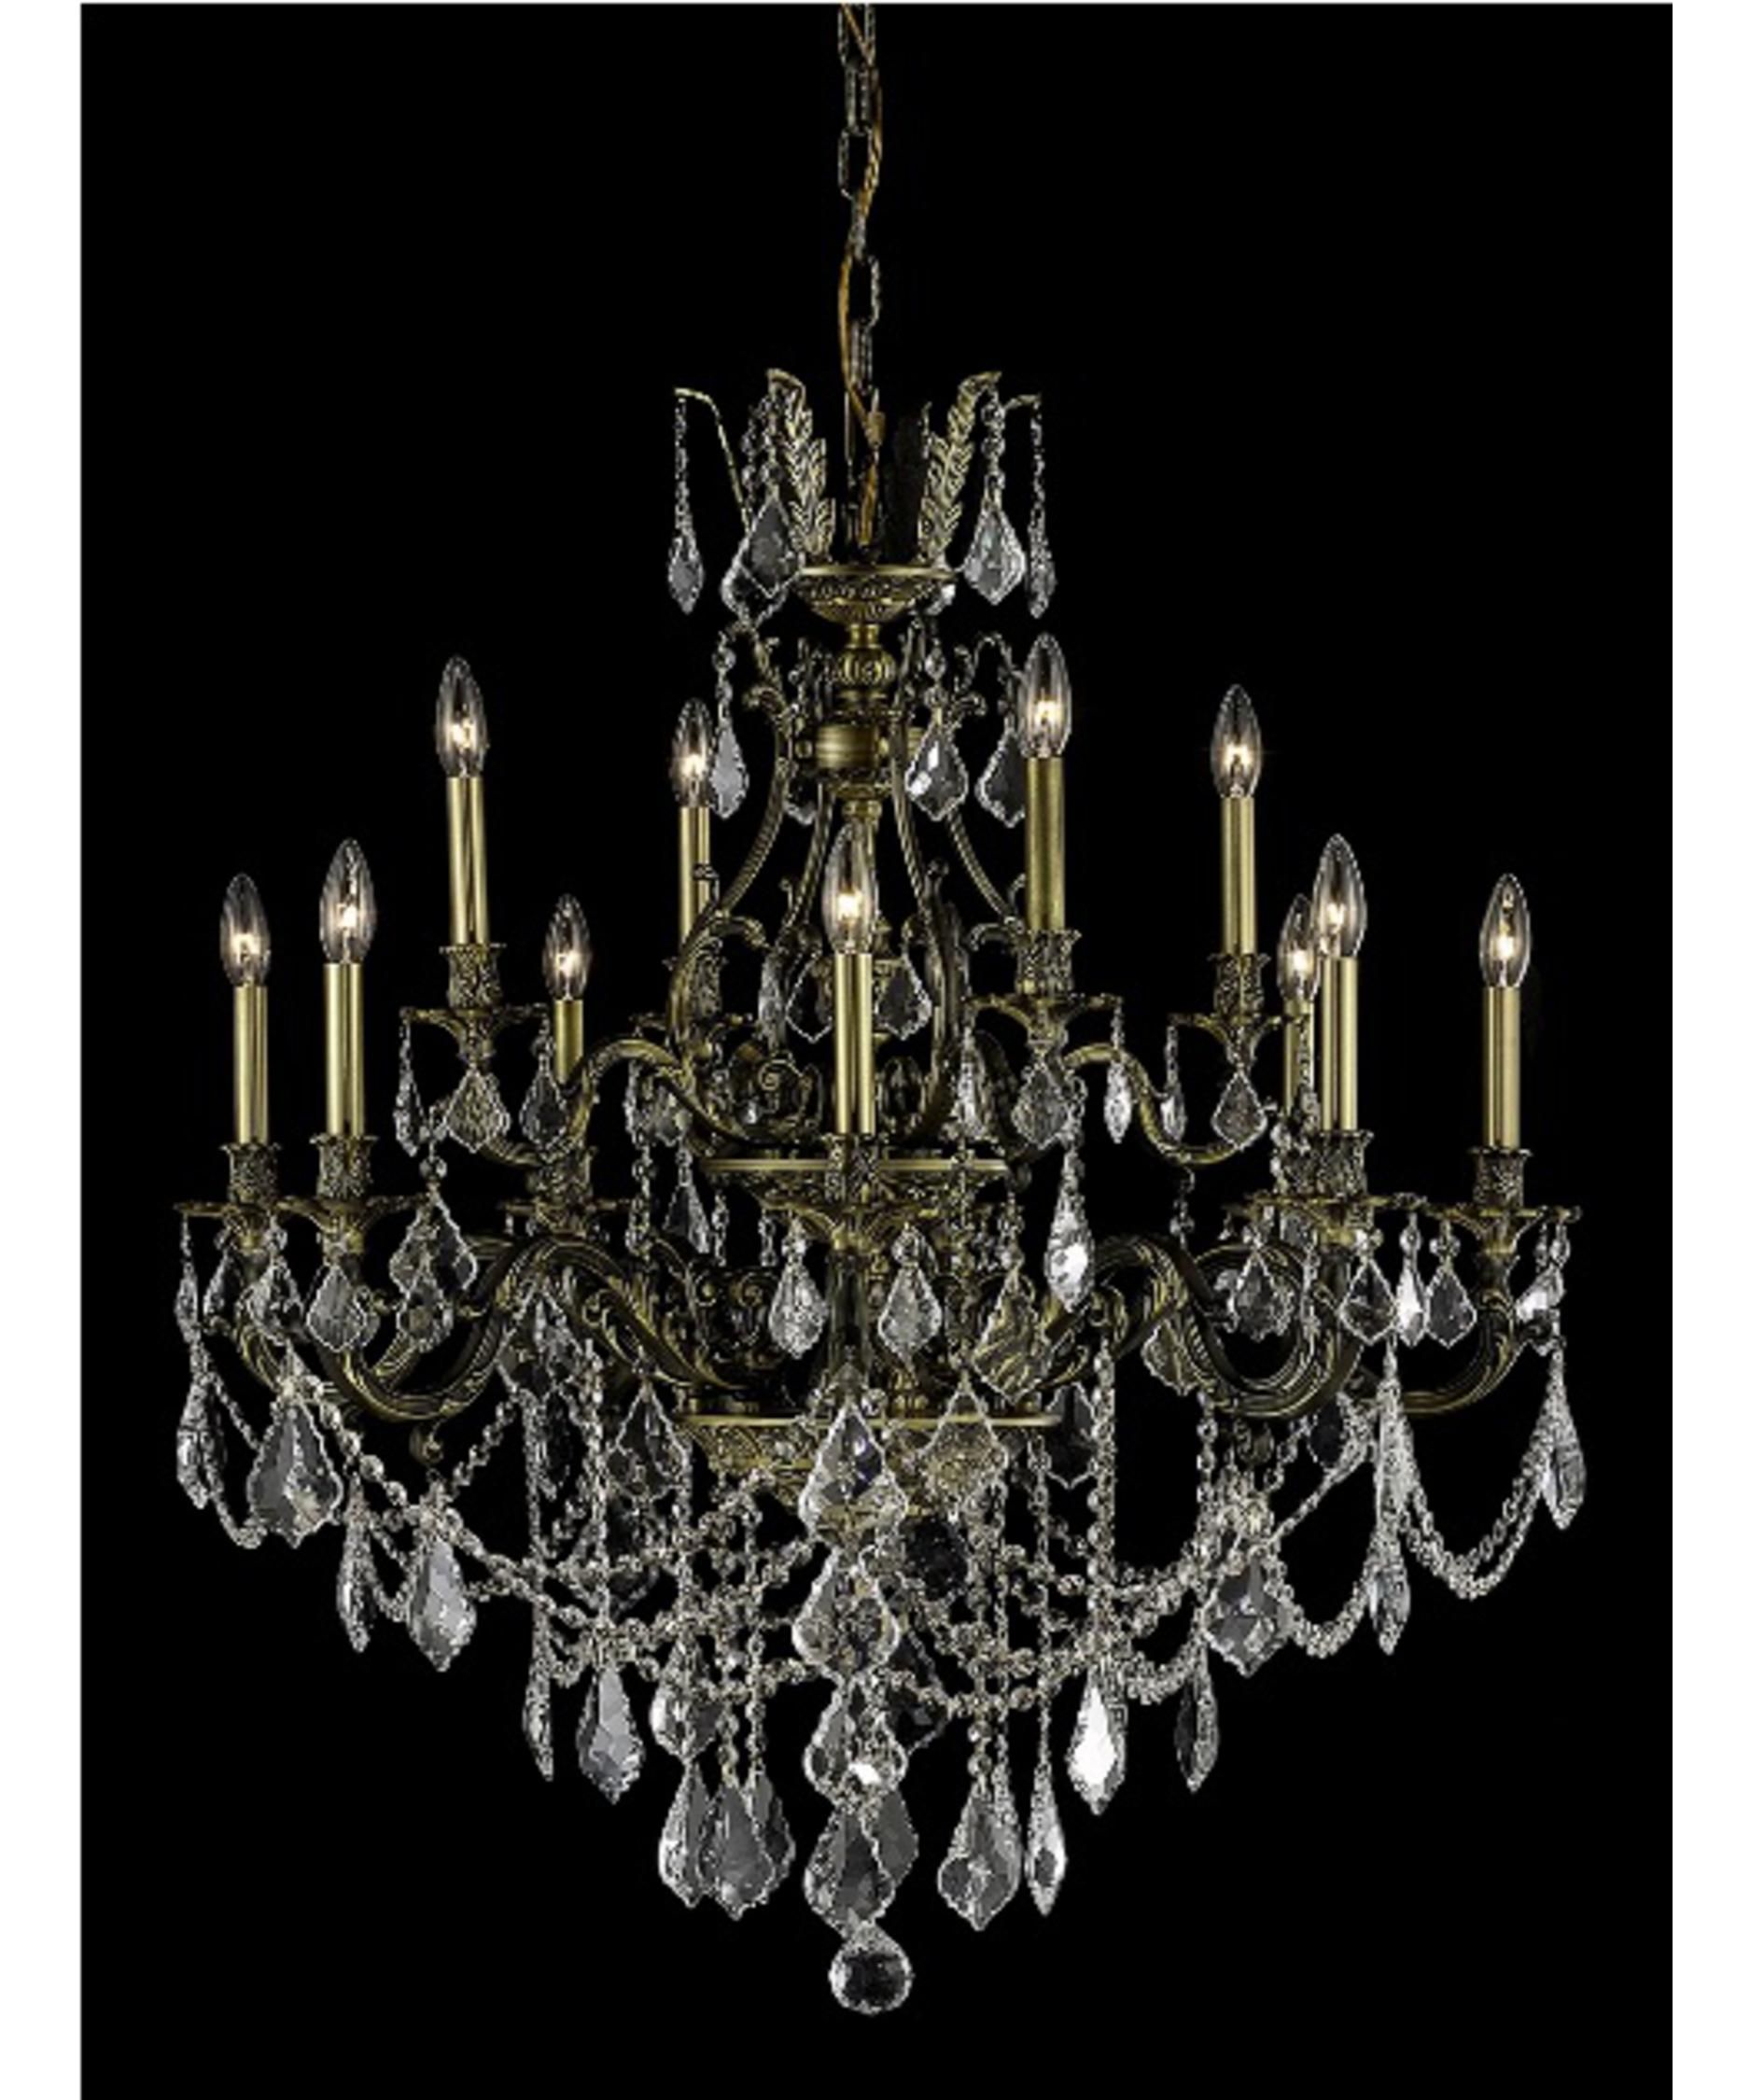 New Elegant Lighting Chandelier , Luxury Elegant Lighting Chandelier 50 For  Small Home Decoration Ideas With